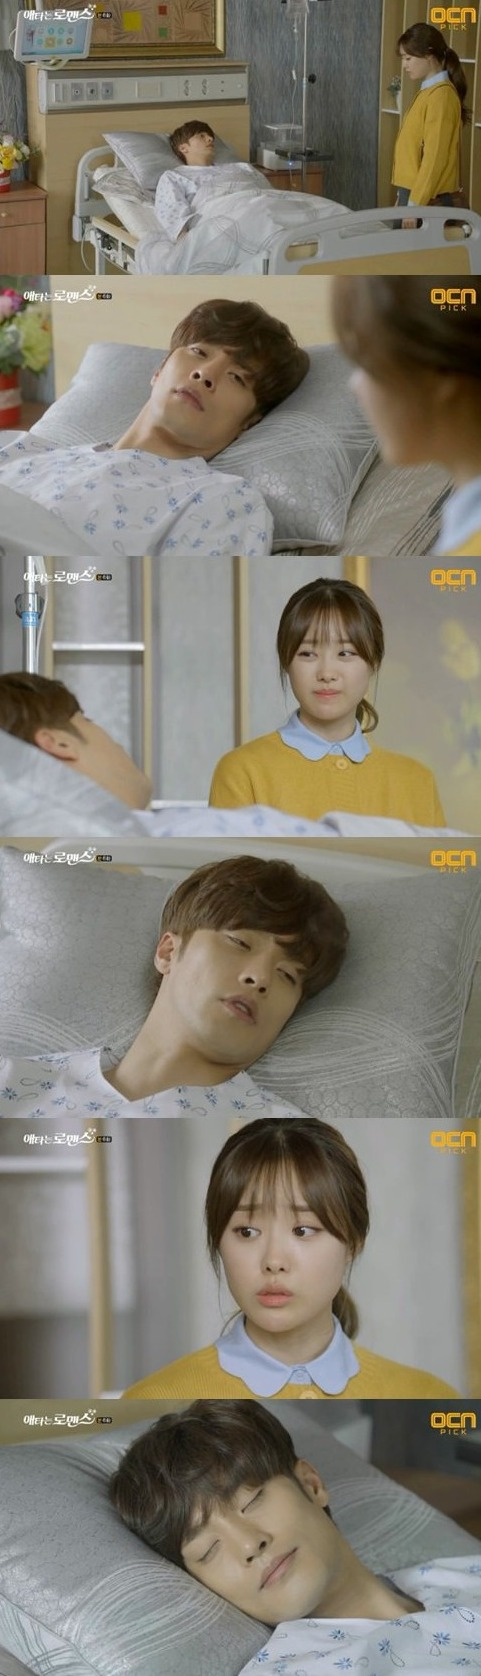 [Spoiler] Added episode 6 captures for the Korean drama 'My Secret Romance'